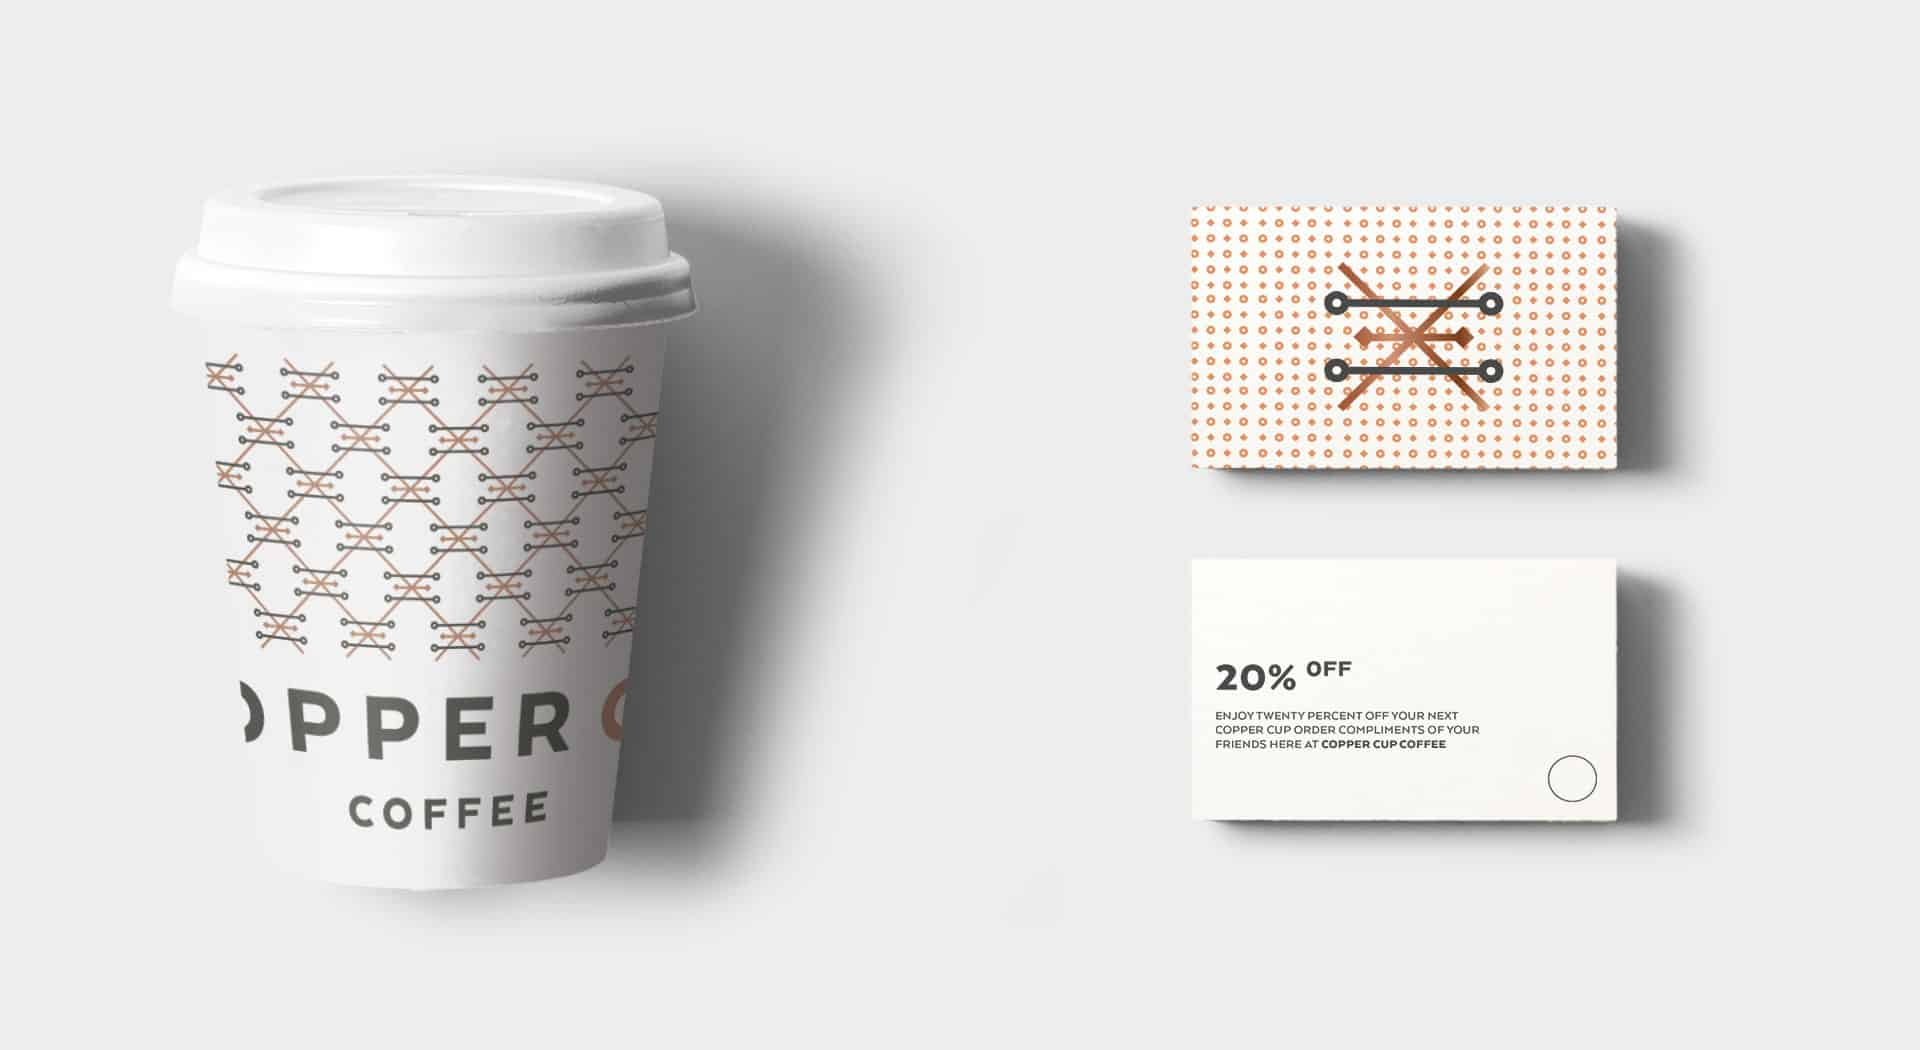 Copper Cup Coffee Company restaurant and cafe branding and concept development packaging design